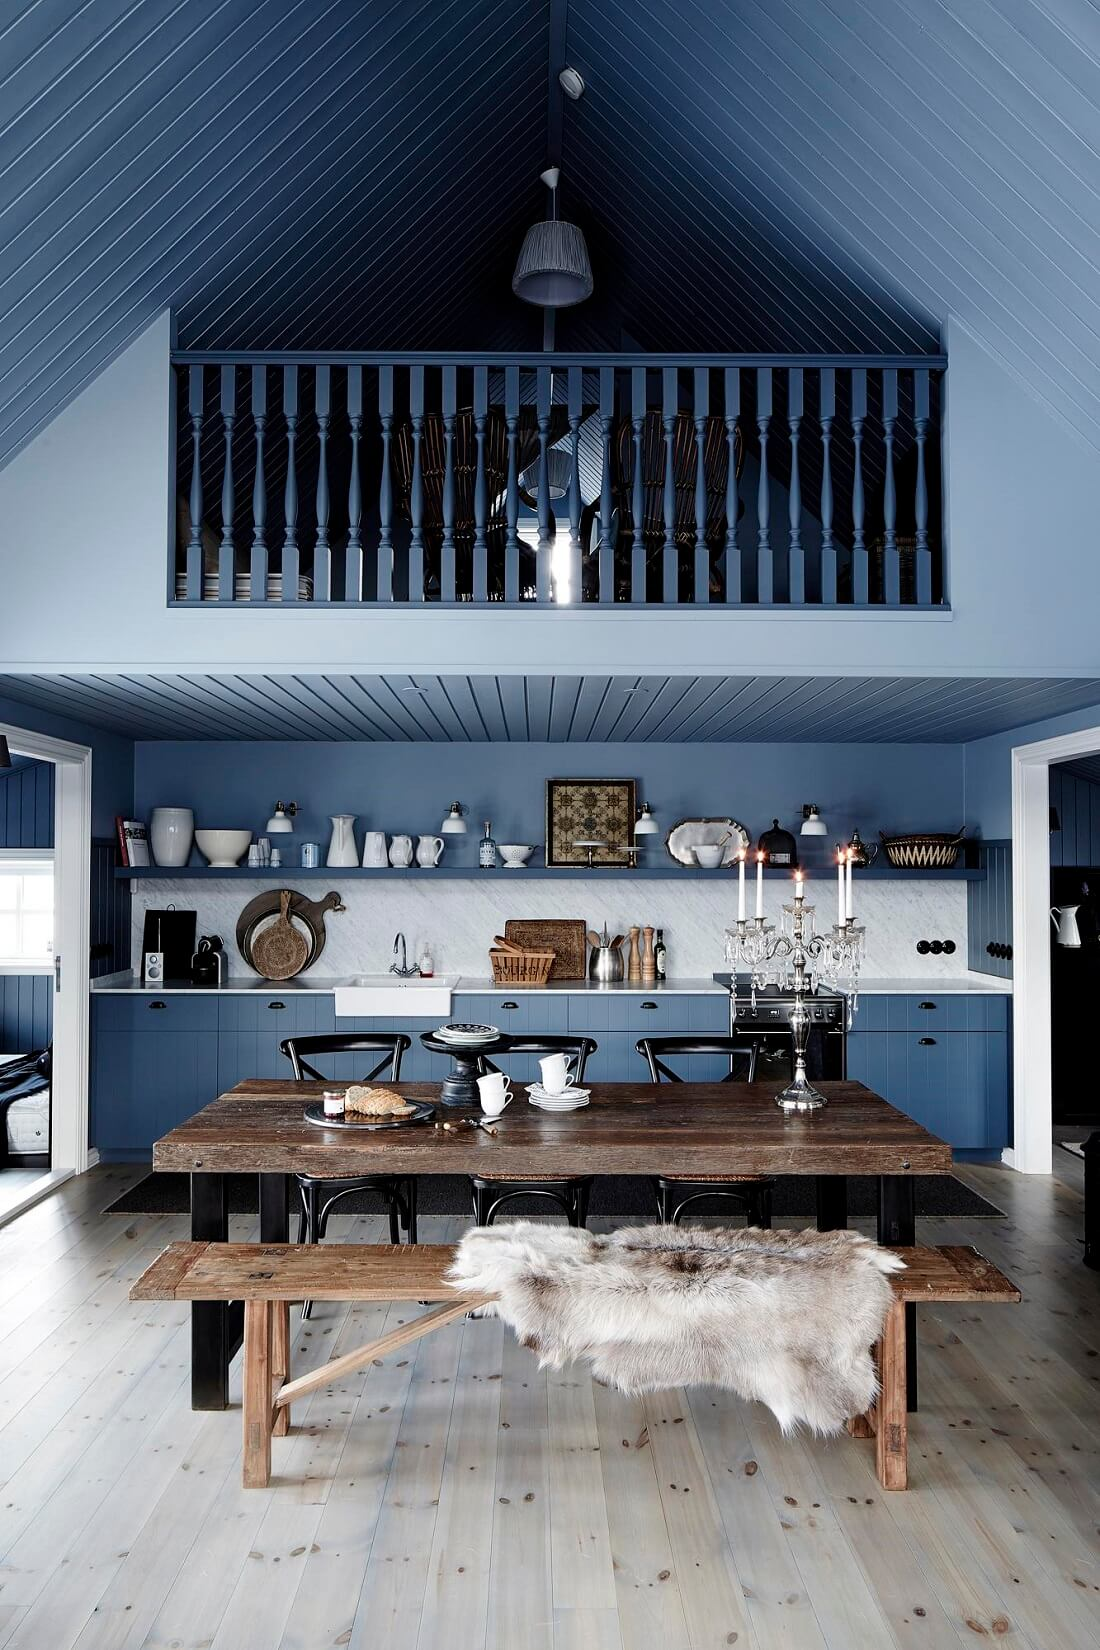 A Black Cottage in Iceland Decorated in Dark Grey Tones